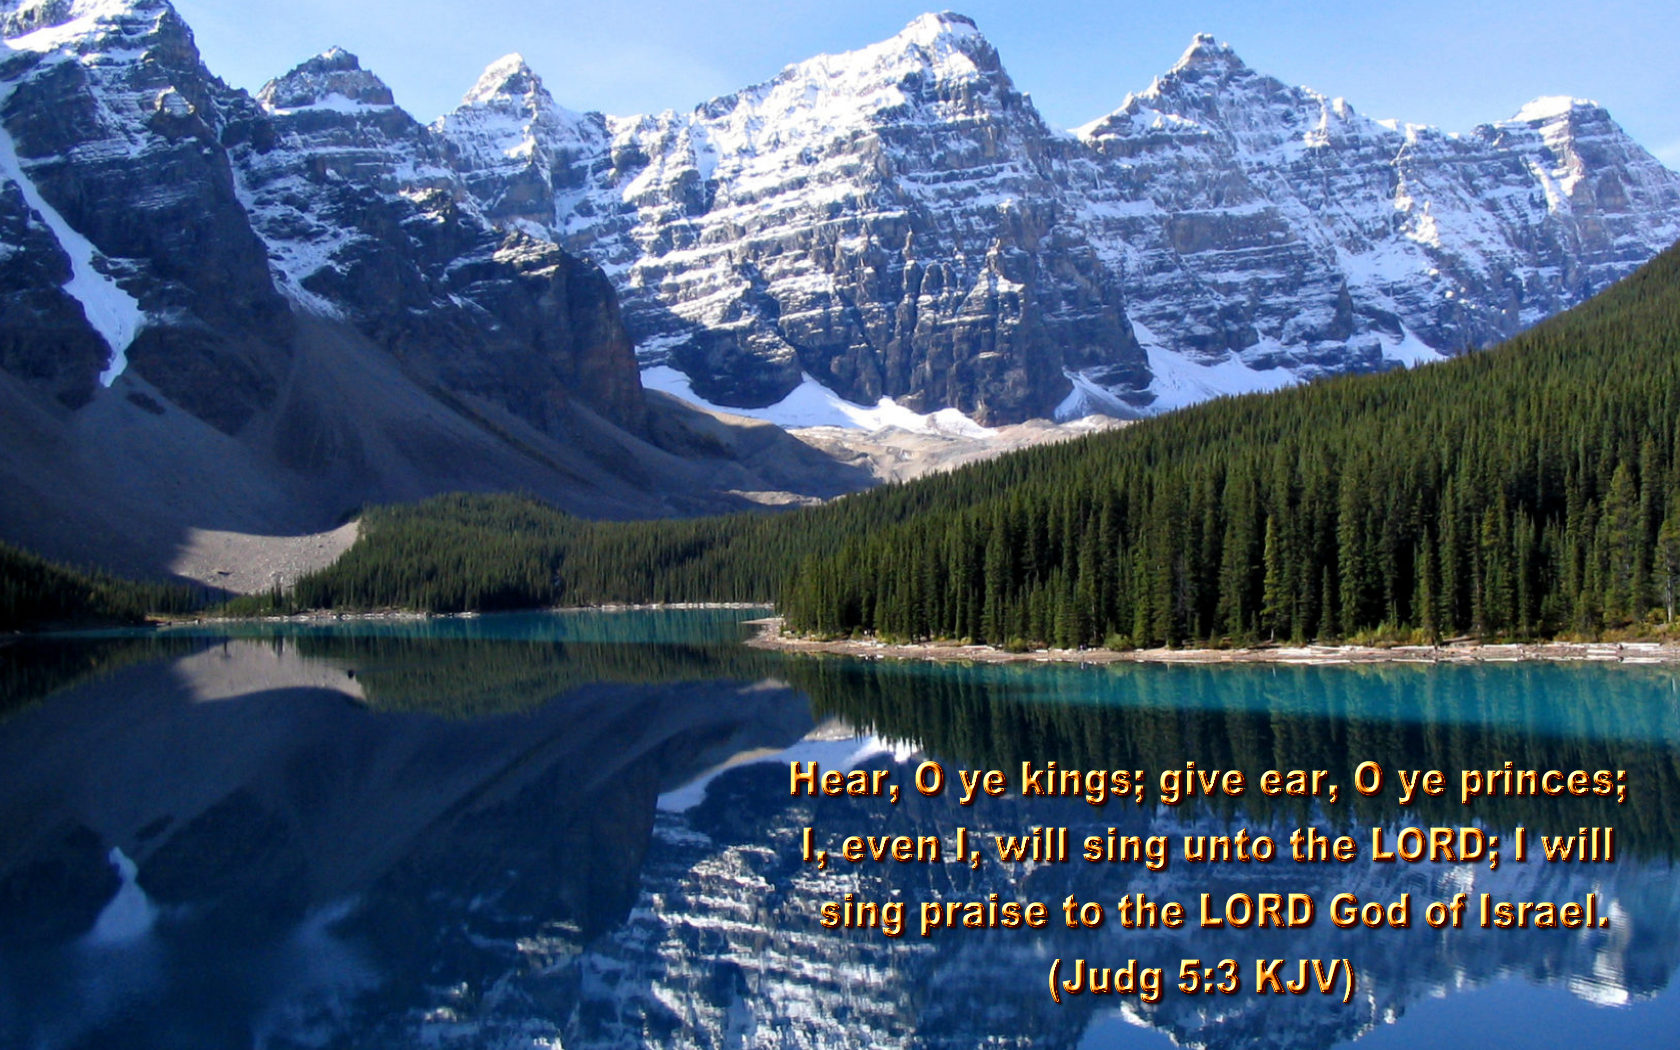 Bible verses large wallpaper 2/2